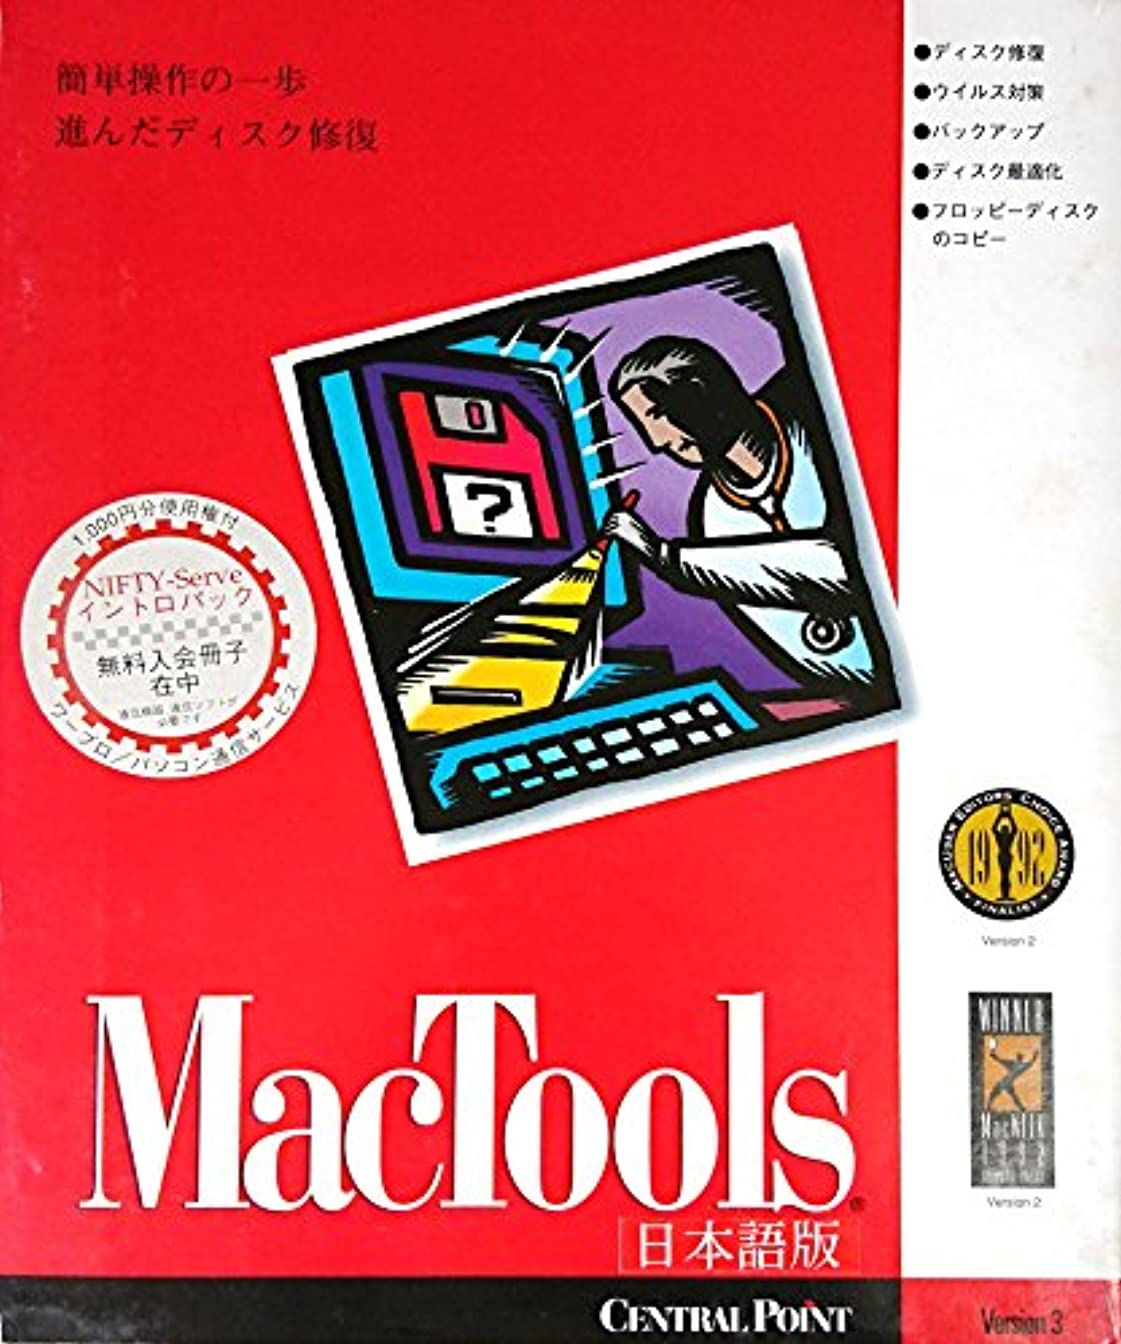 MacTools Version 3.0J 日本語版 Macintosh